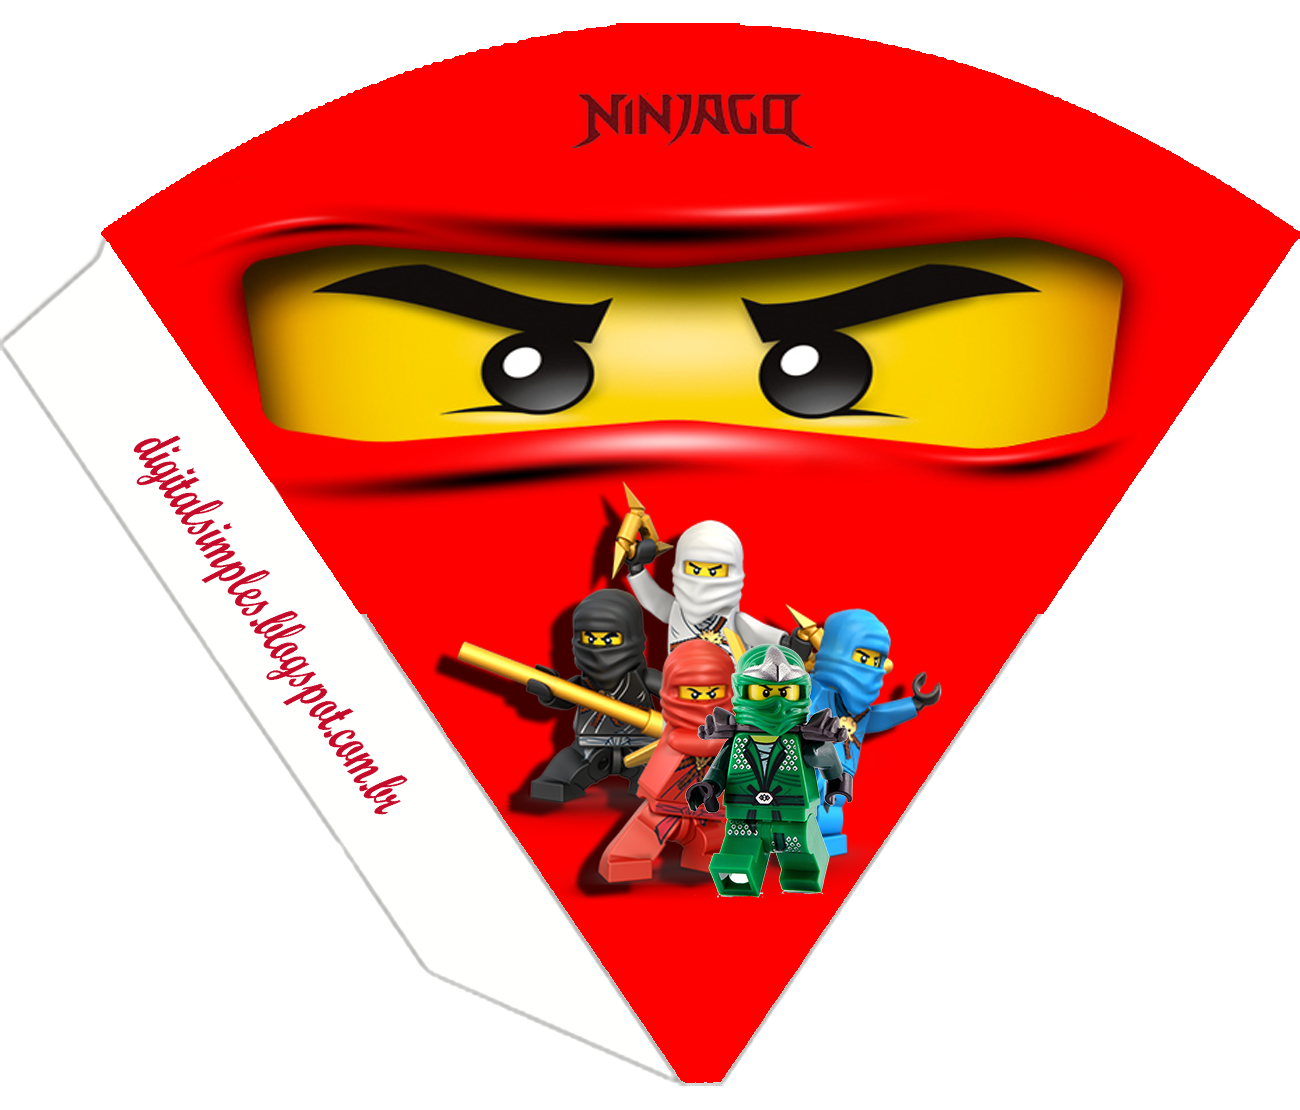 Free Cool Stuff For Superheroes Star Wars Angry Birds Minecraft Sonic Pokemon Lego Dr Who And Mo Ninjago Party Lego Ninjago Party Lego Ninjago Birthday